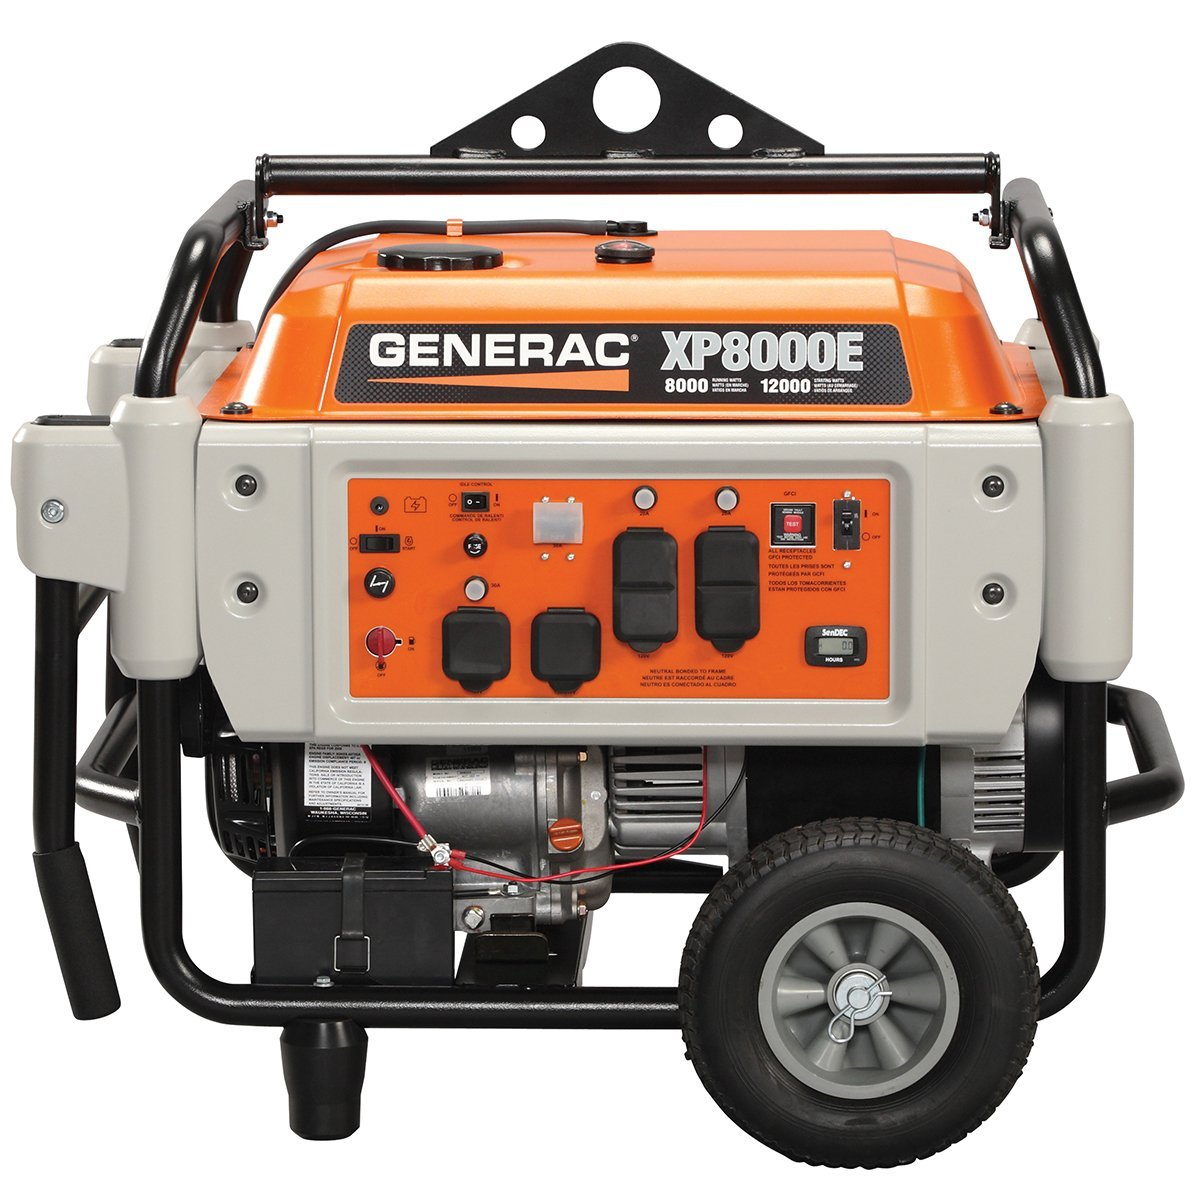 Generac Generator Wiring Diagram Model 0059430 Starting Know About Schematic Gp7500e